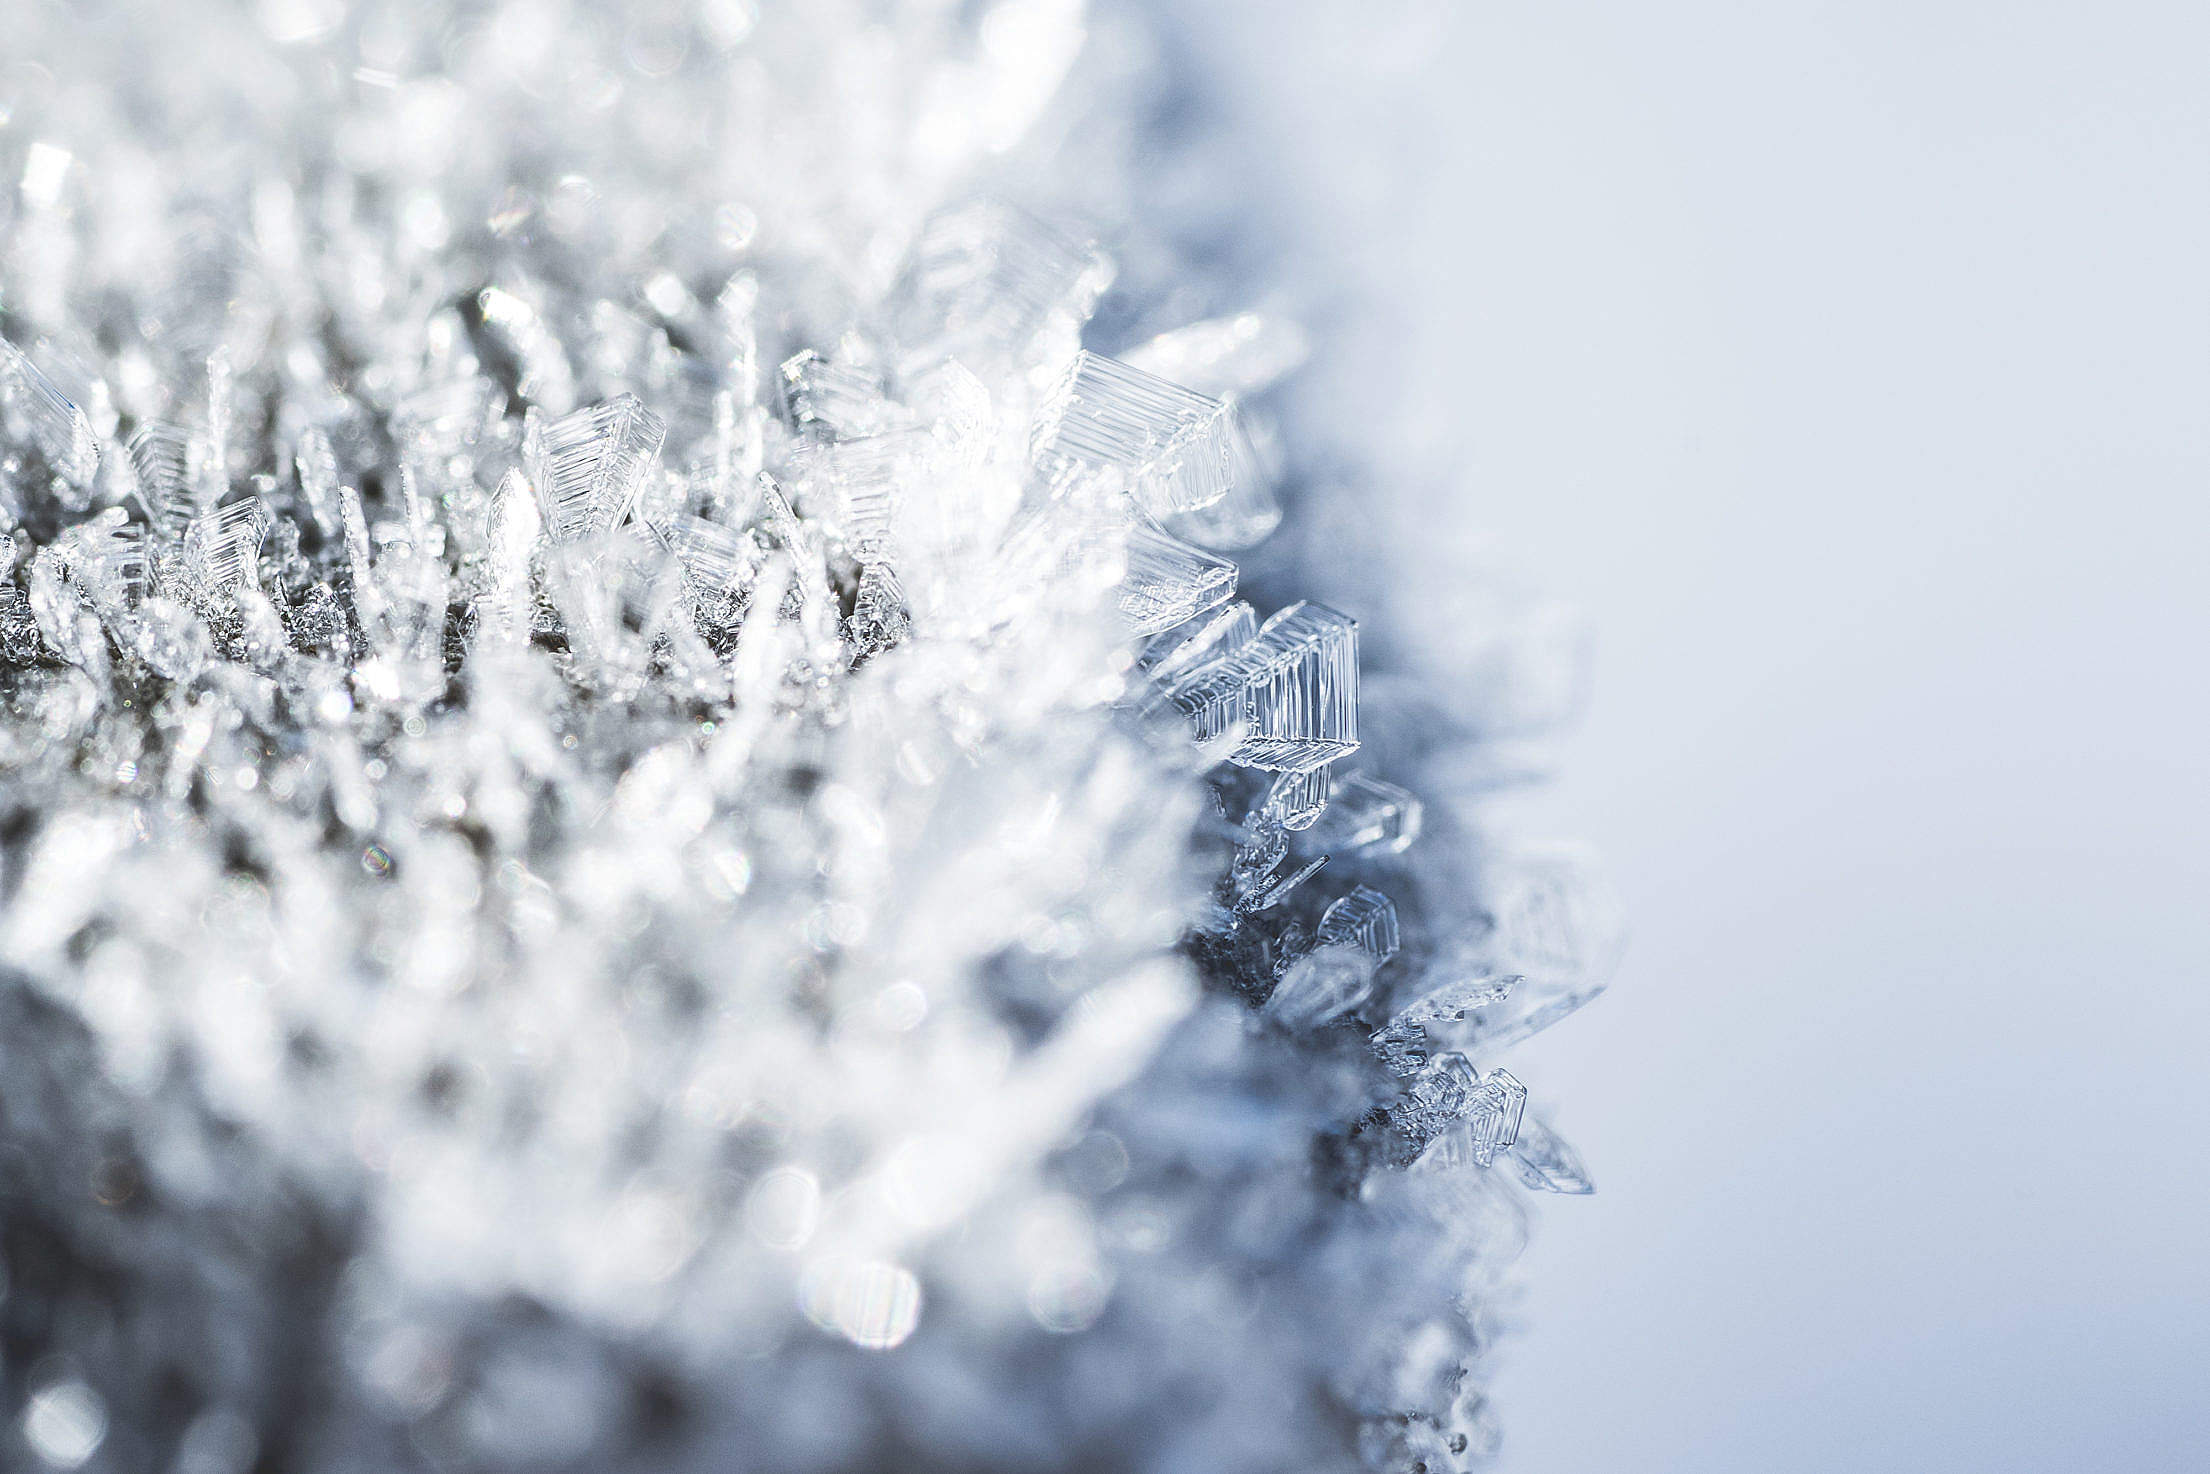 Morning Hoar Frost Frozen Snowflakes Close Up Free Stock Photo ...